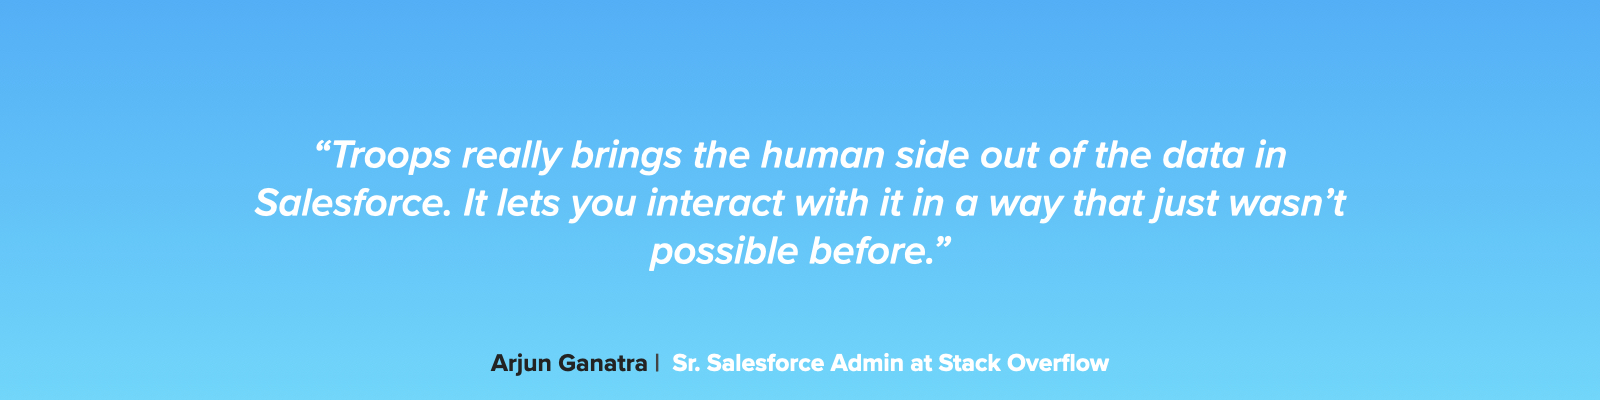 StackOverflow Quote #6.001